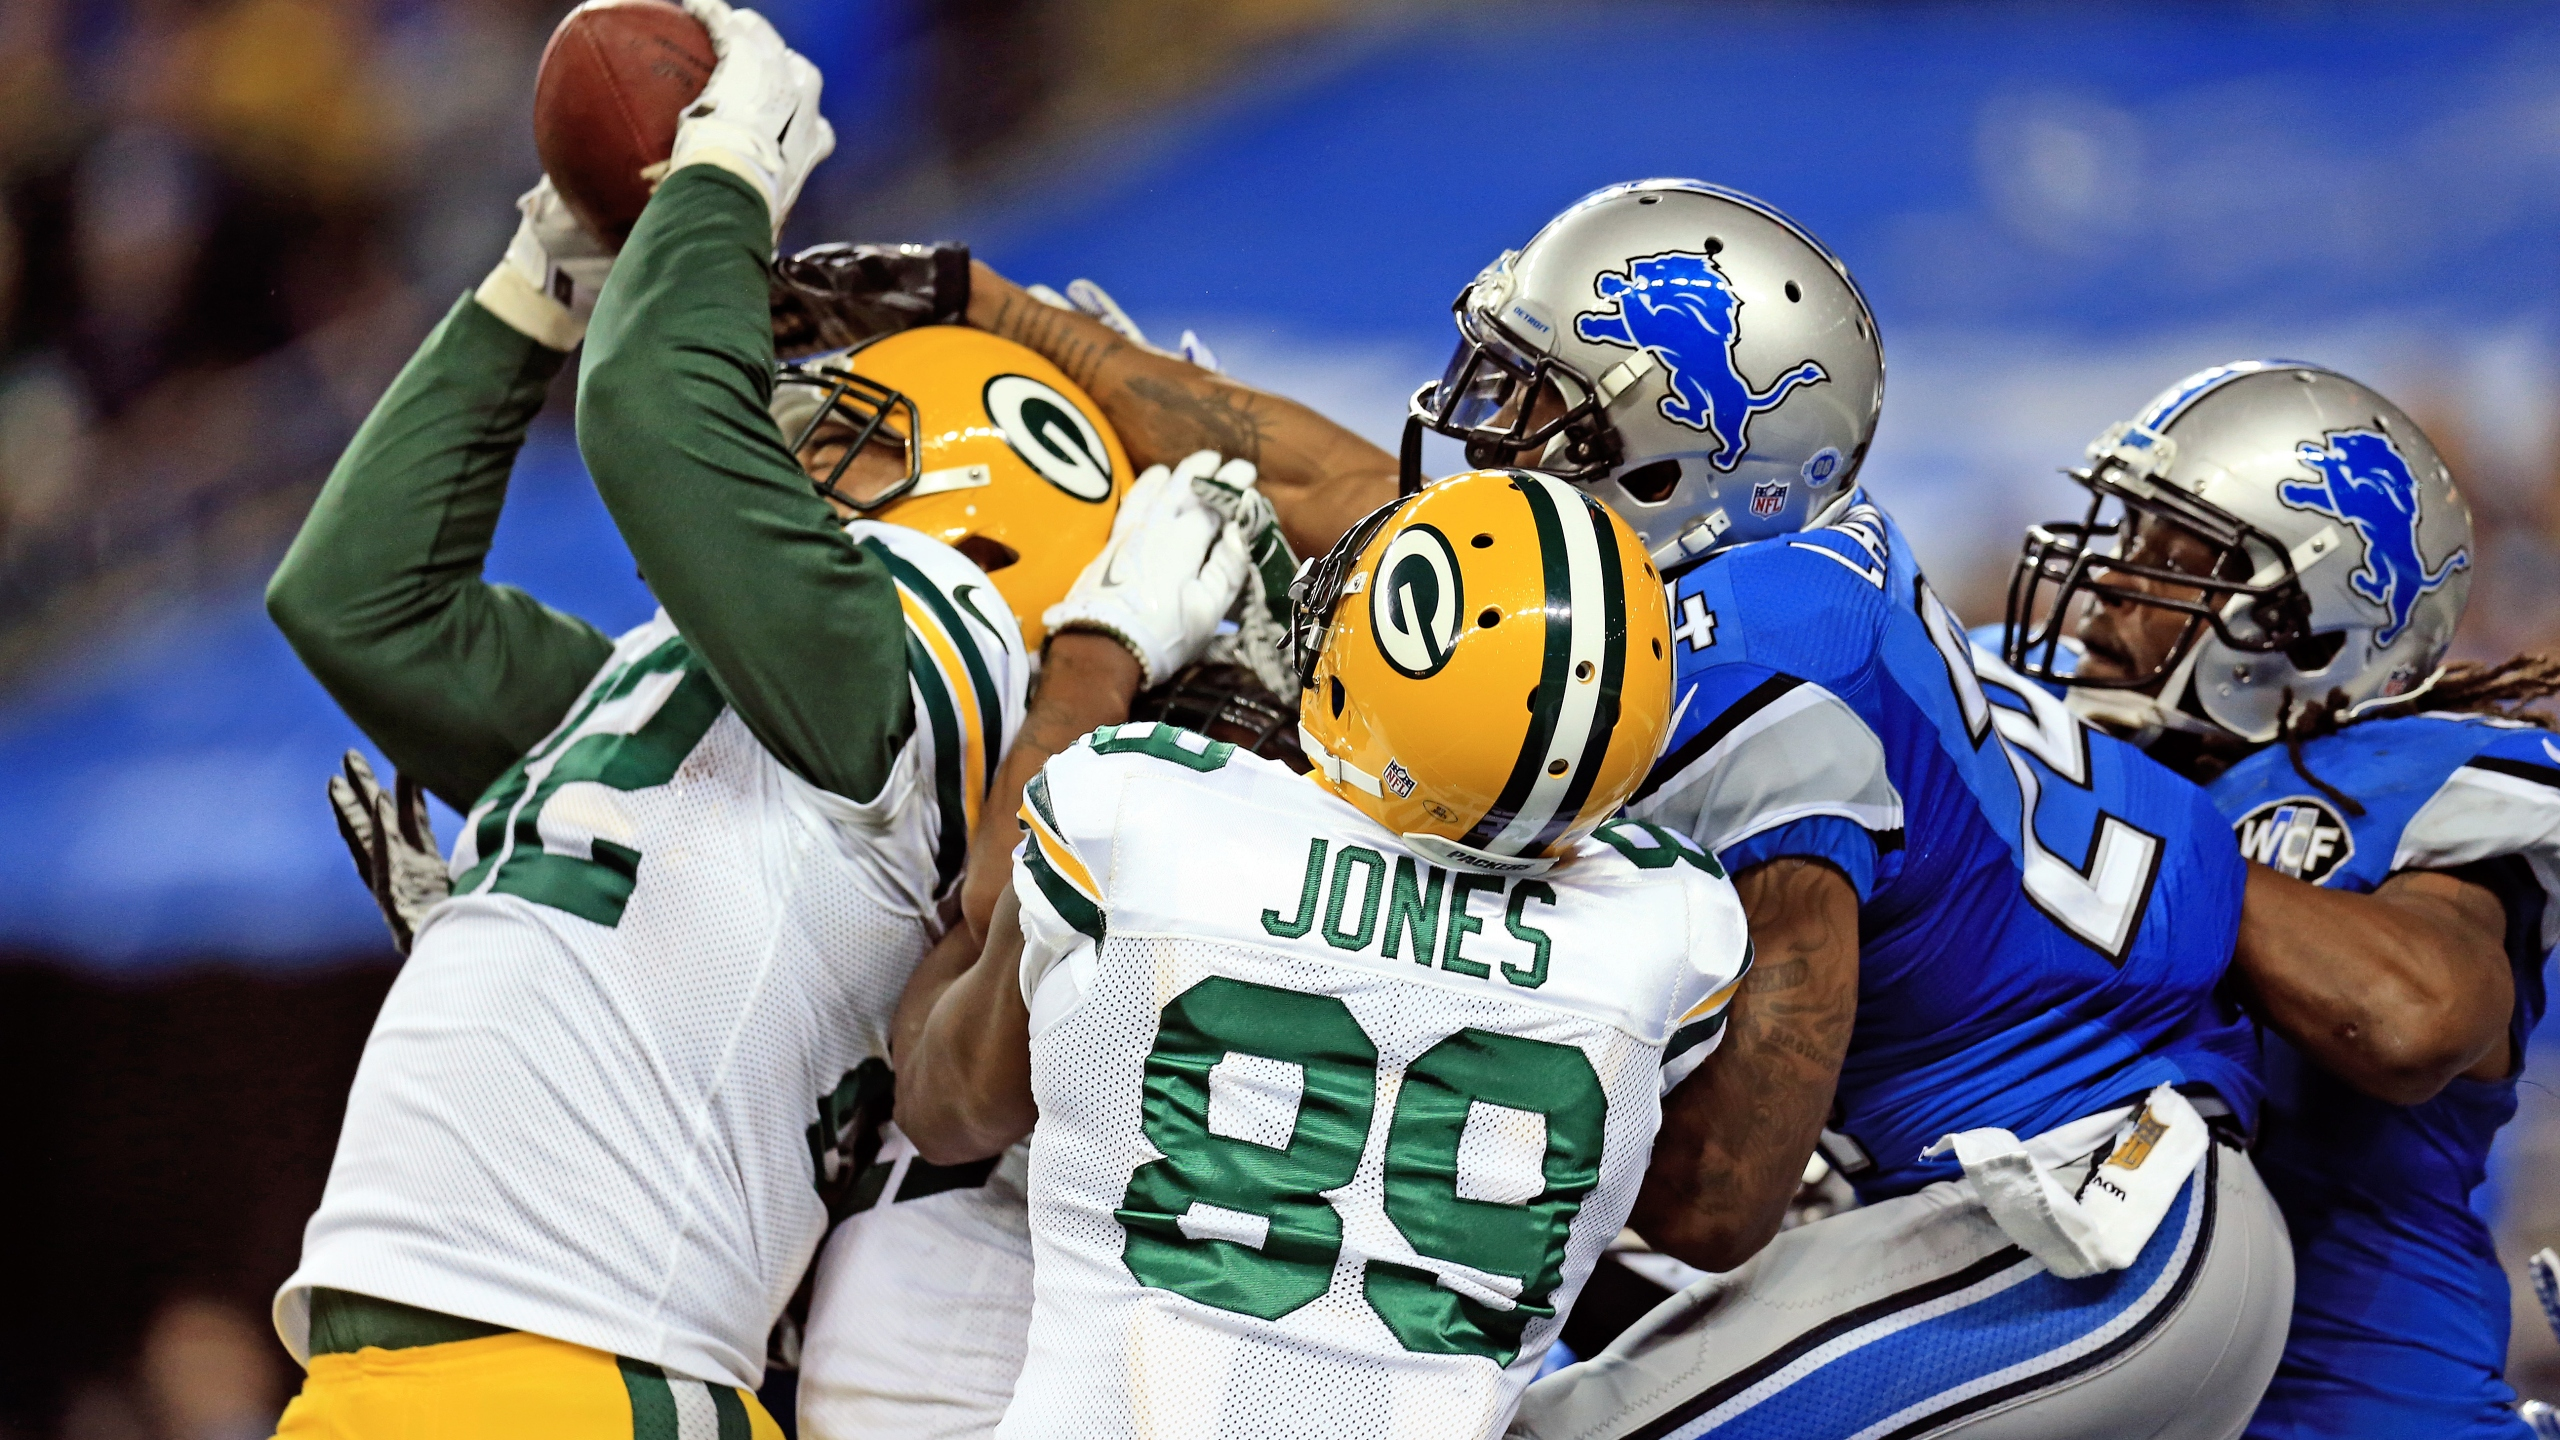 Richard Rodgers catches hail mary in Packers win over Lions